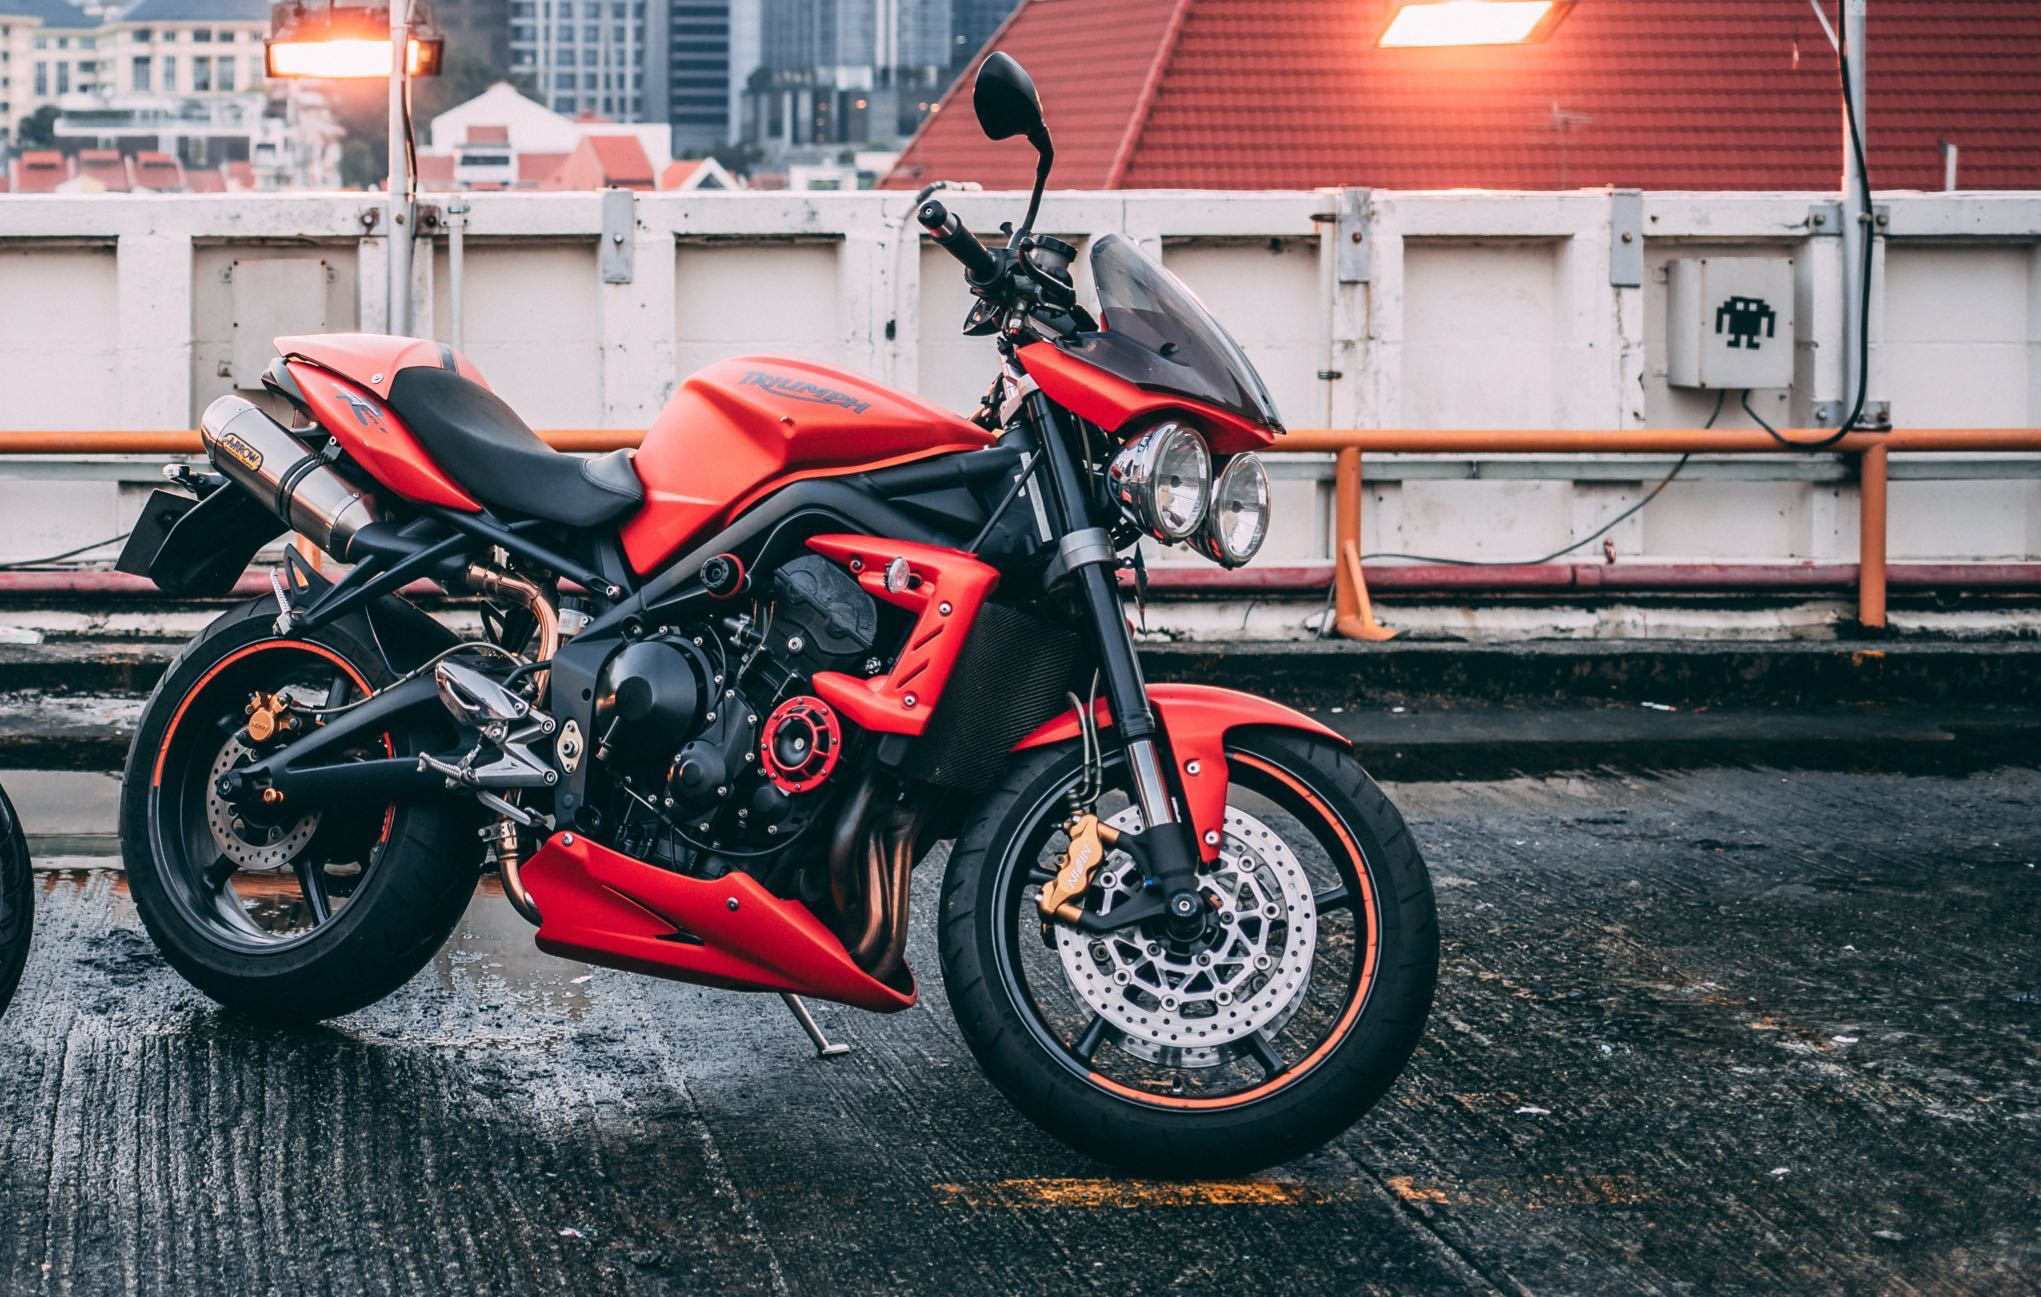 Triumph Street Triple R 675 Motorbikes Motorbikes For Sale Class